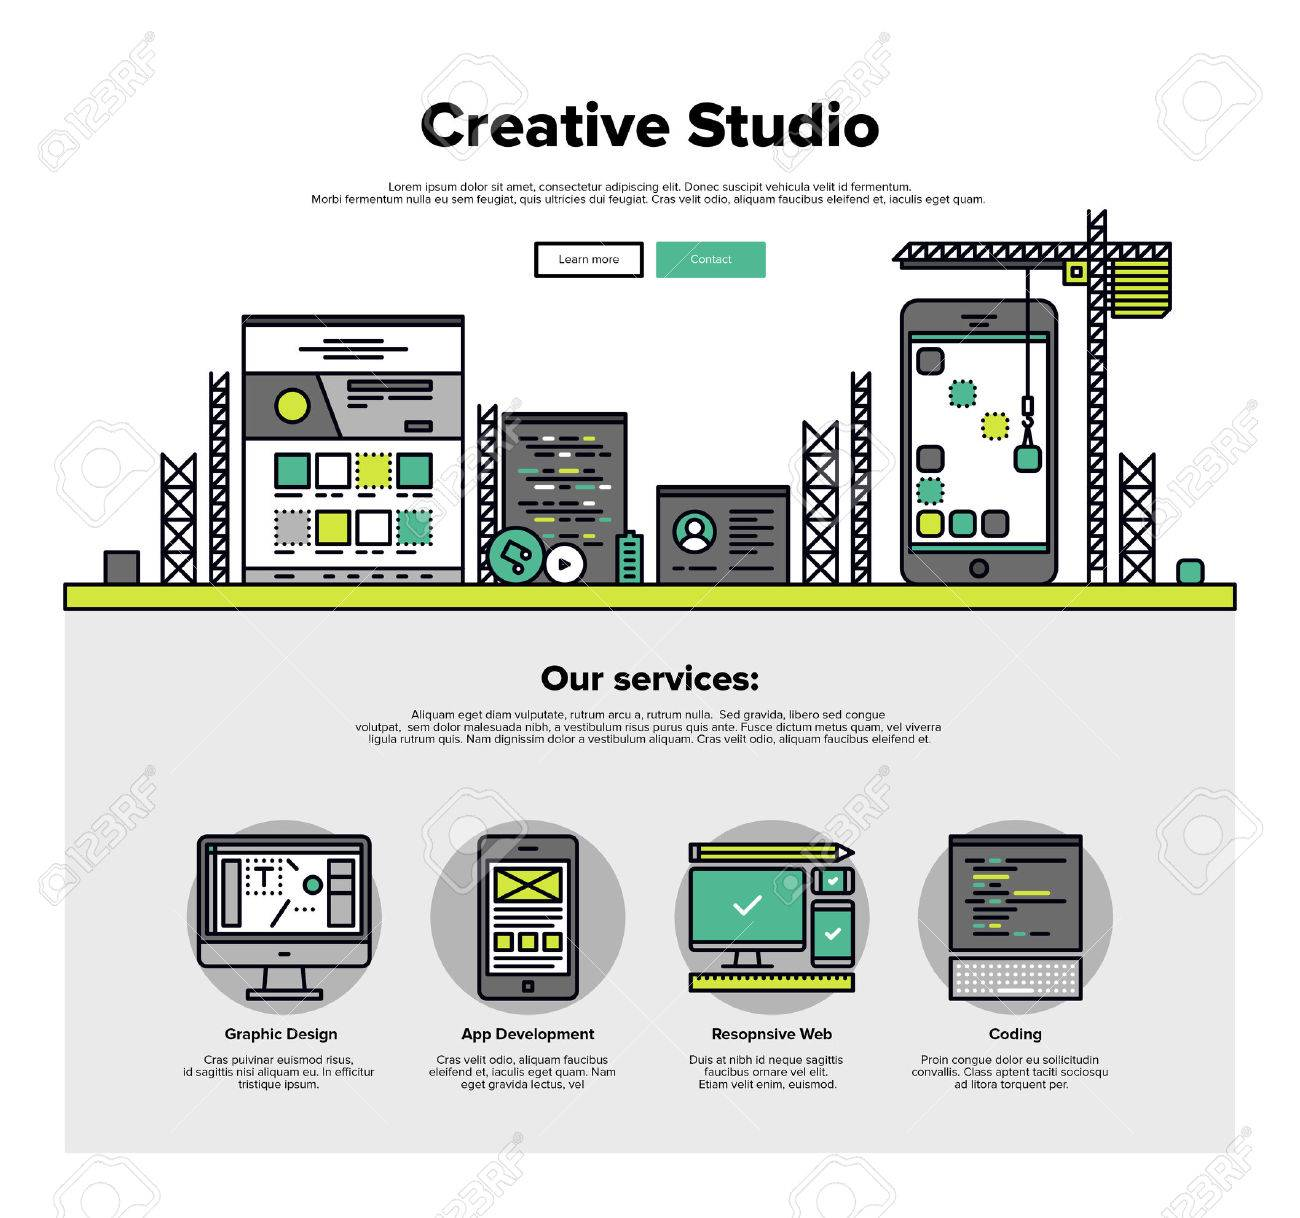 One page web design template with thin line icons of creative studio services like web coding for responsive design and app development. Flat design graphic hero image concept, website elements layout. Stock Vector - 46612098